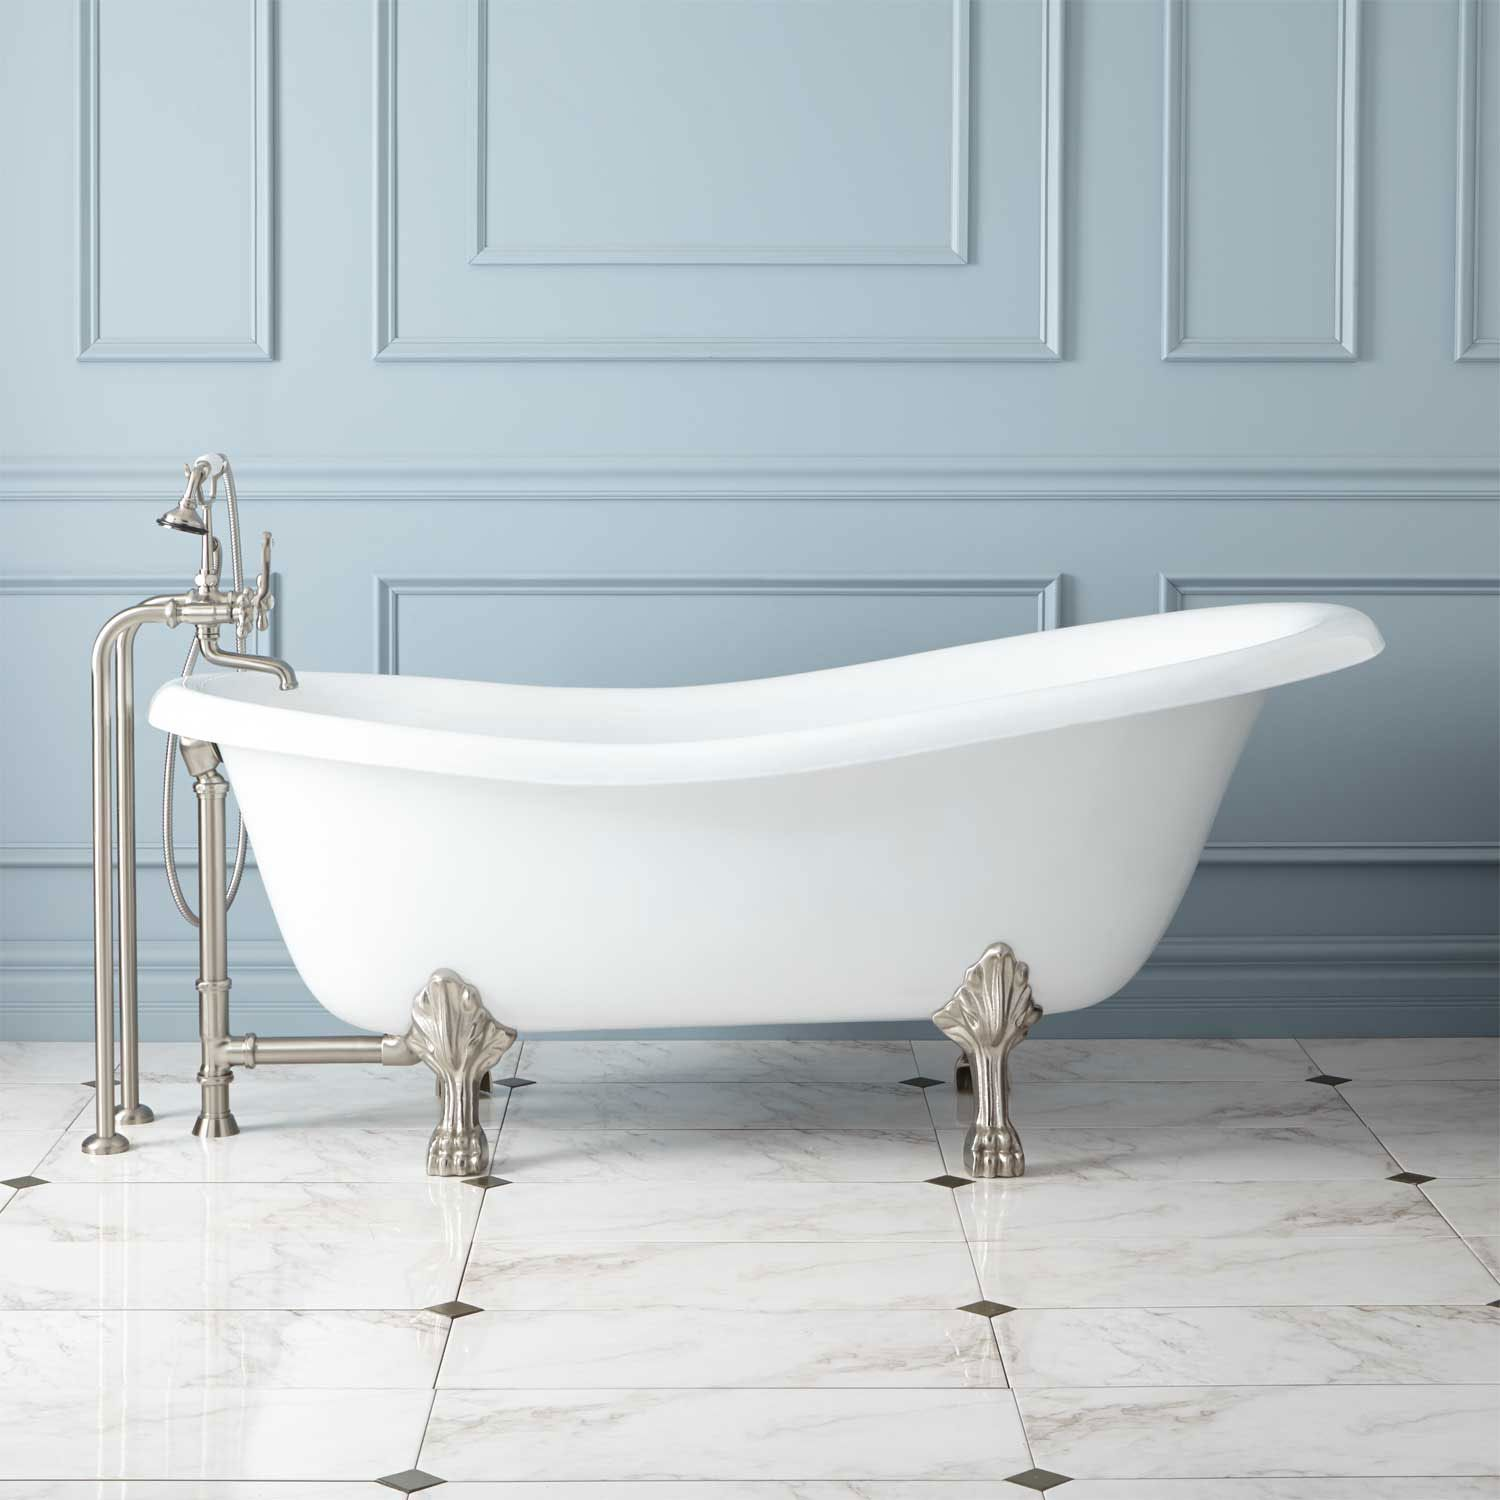 Pics Of Bathtubs Cast Iron Tubs Clawfoot And Freestanding Bathtubs